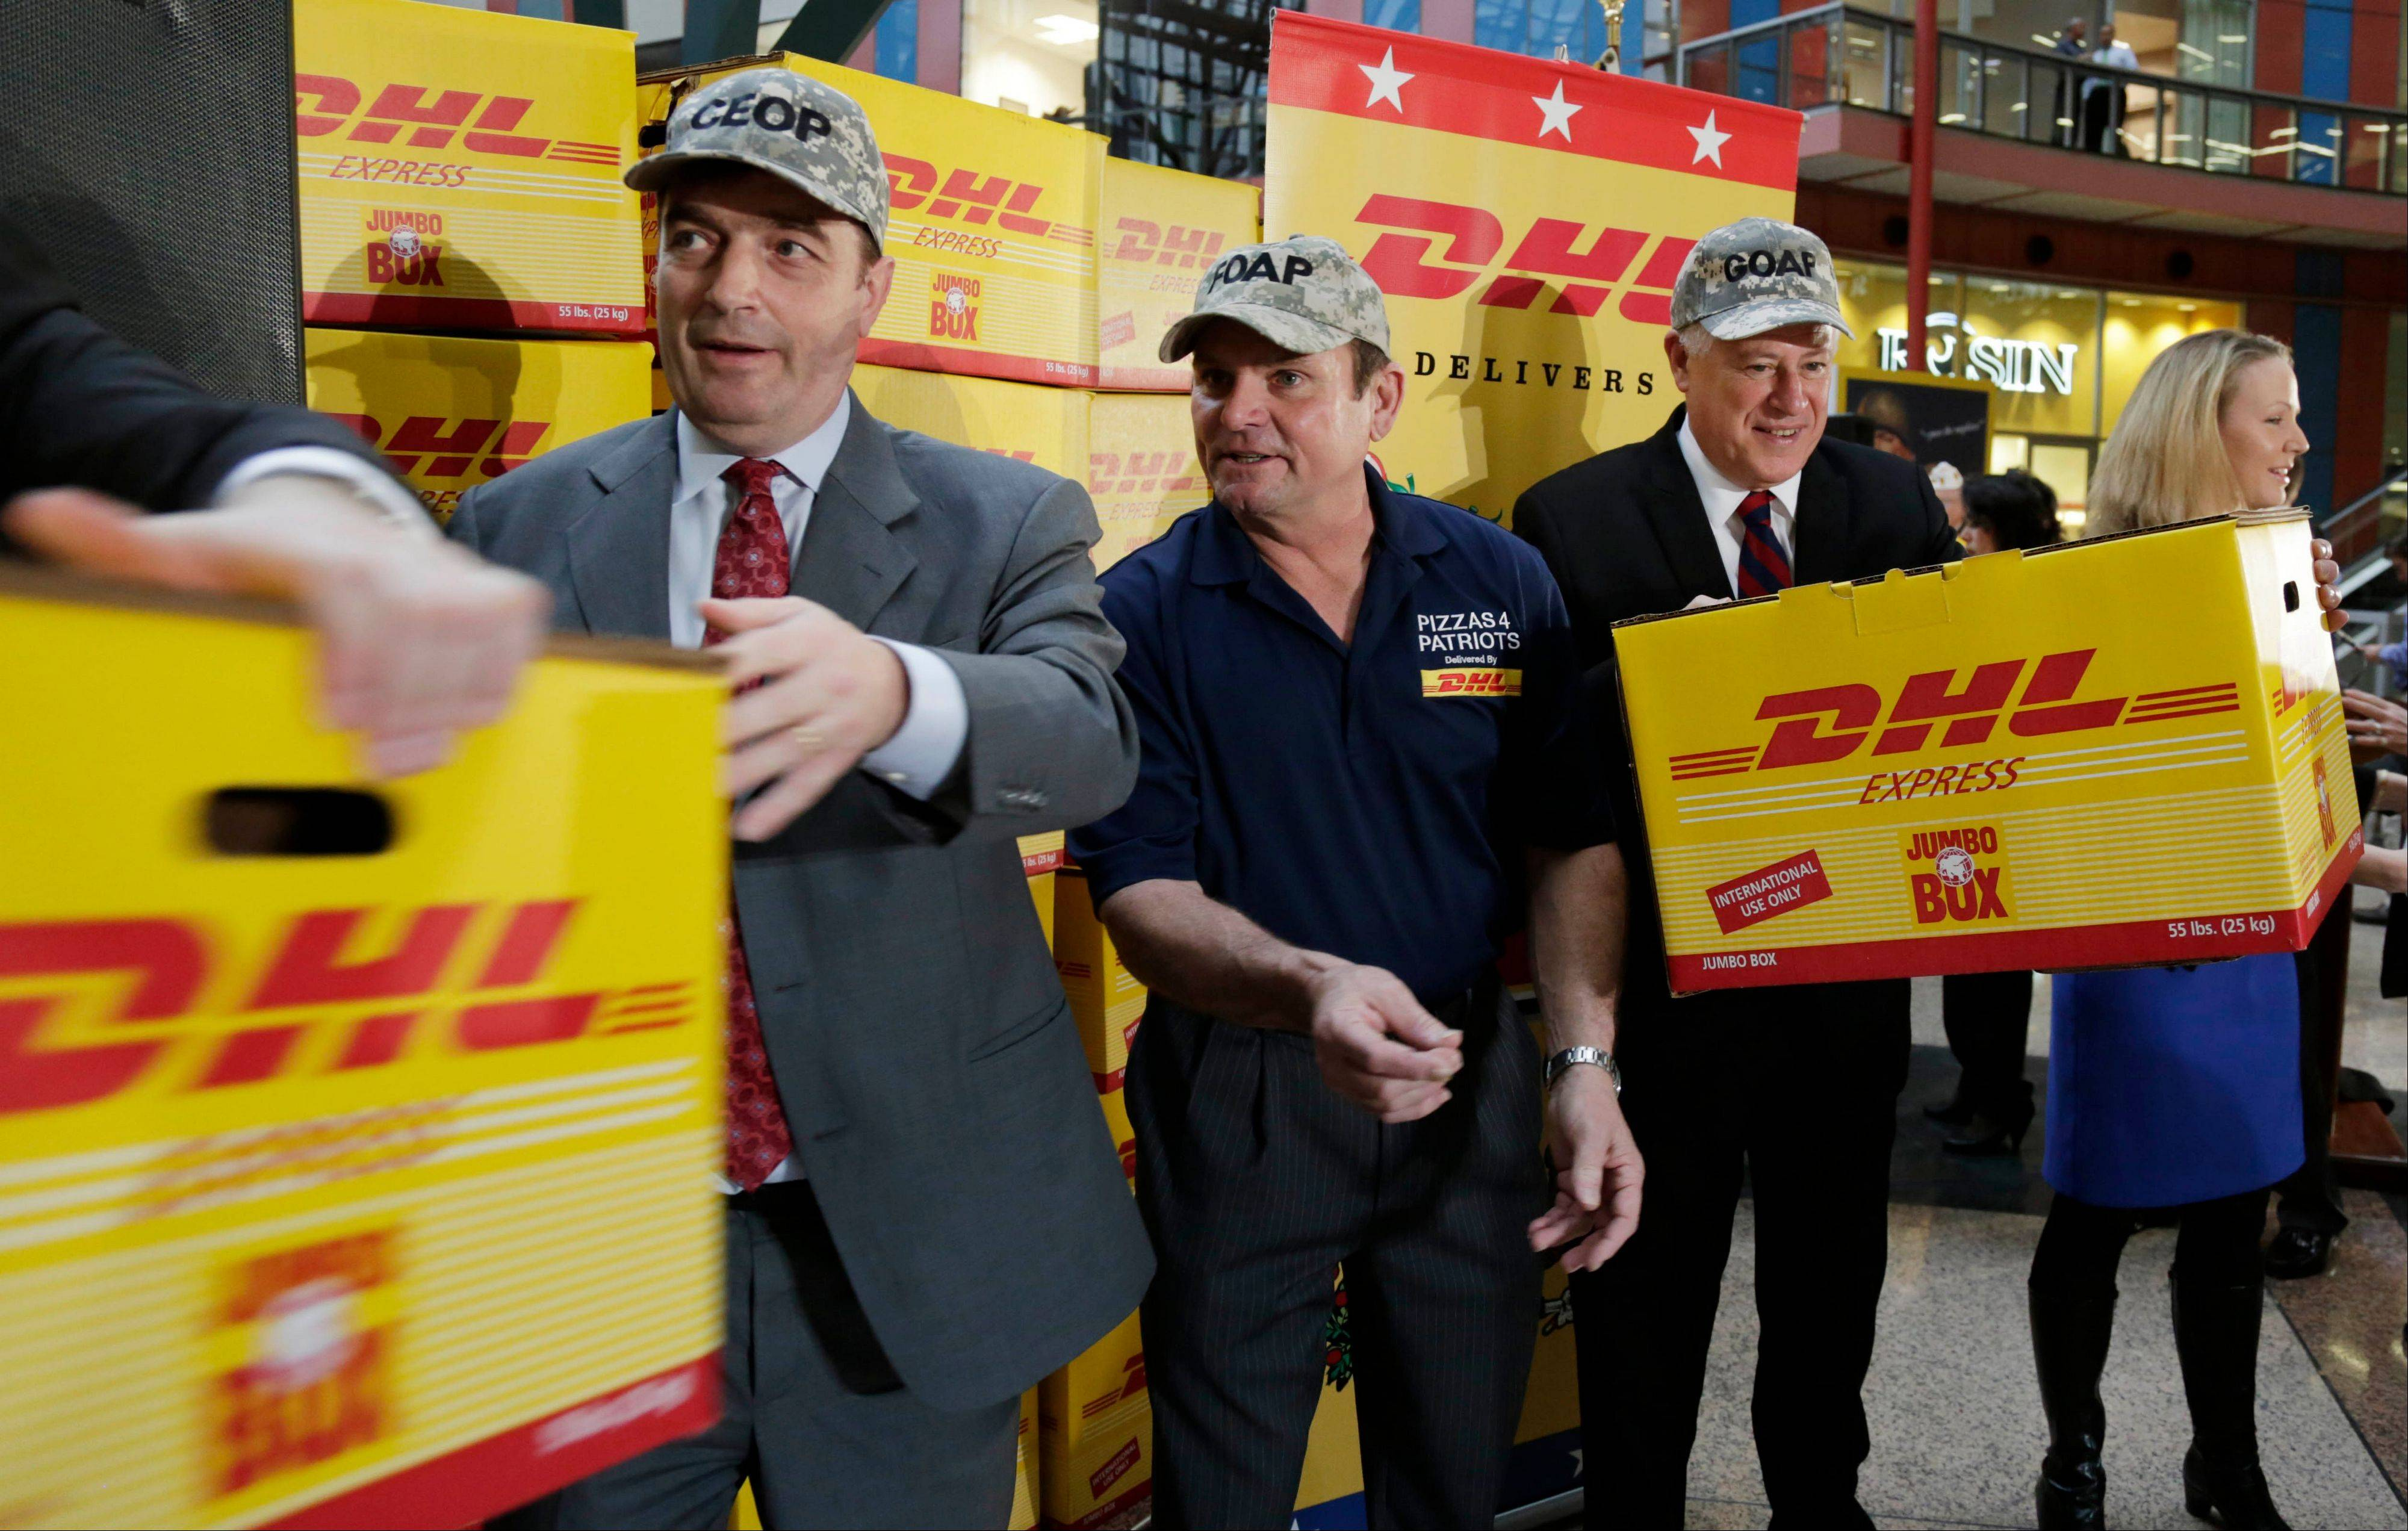 Ian Clough, left, CEO of DHL Express, Elk Grove resident Mark Evans, center, of Pizza 4 Patriots, and Gov. Pat Quinn on Tuesday help load boxes that will hold thousands of Chicago-style pizzas headed overseas to members of the military in time for Super Bowl Sunday.